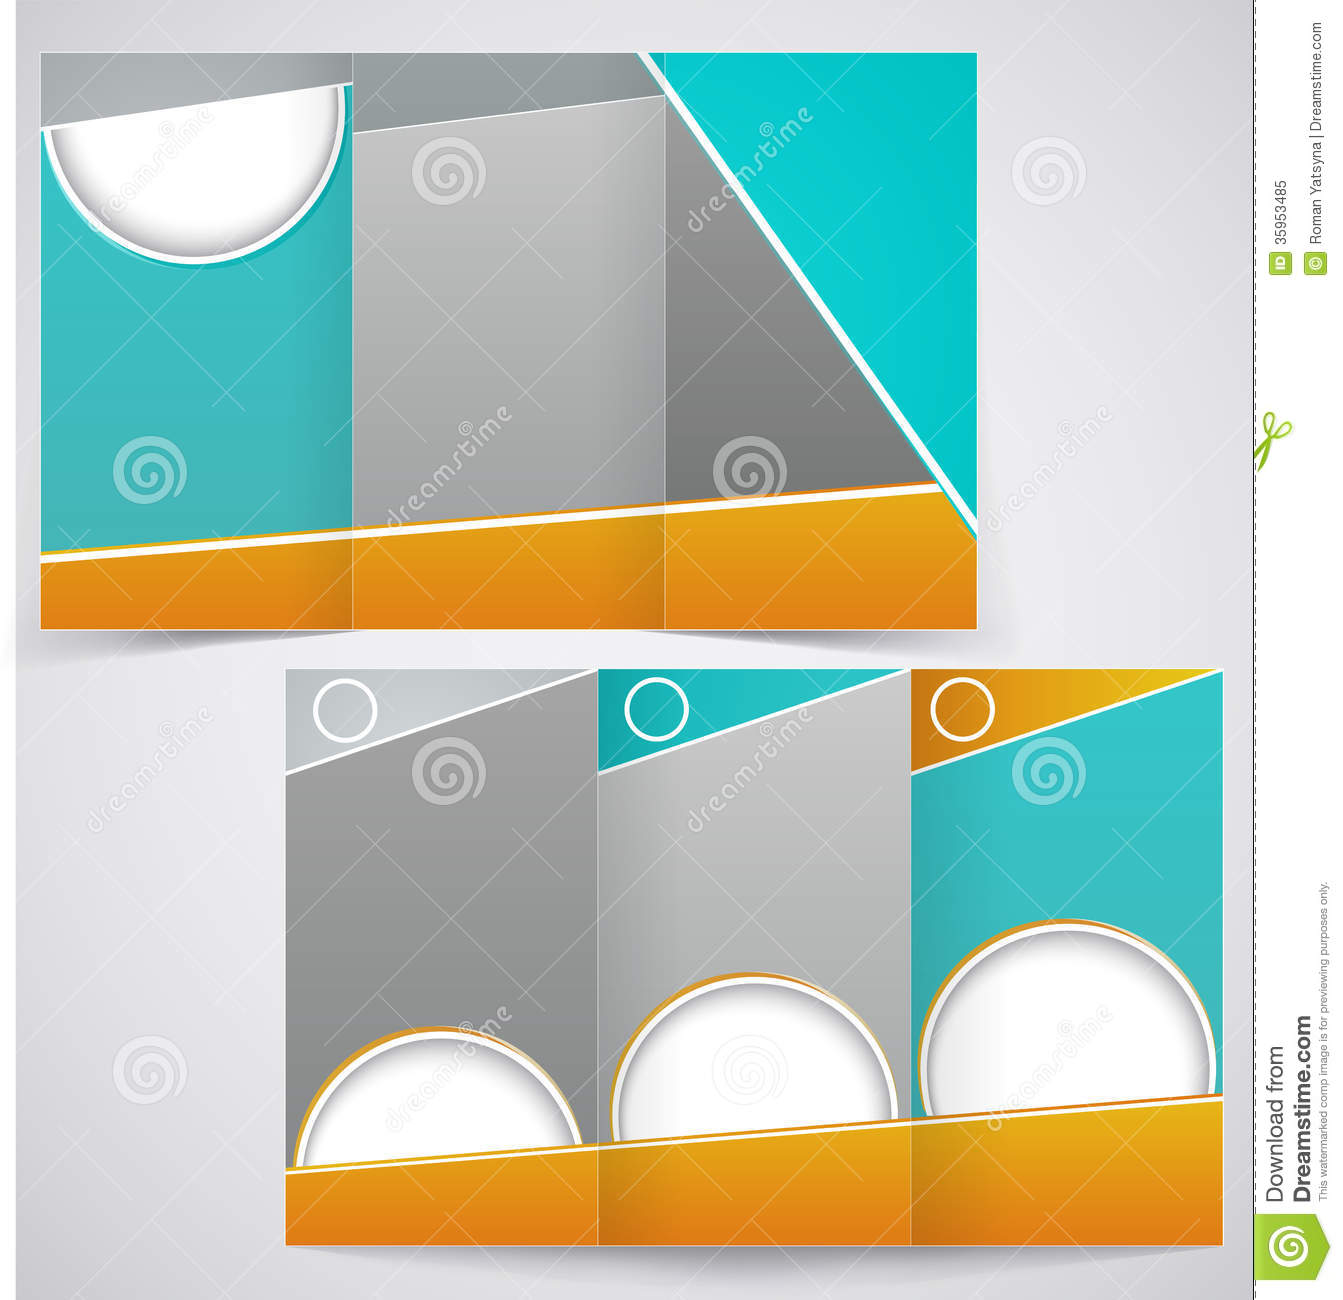 blank template brochure design blank flyer templates vector brochure layout design blank template brochure design dimension n tk